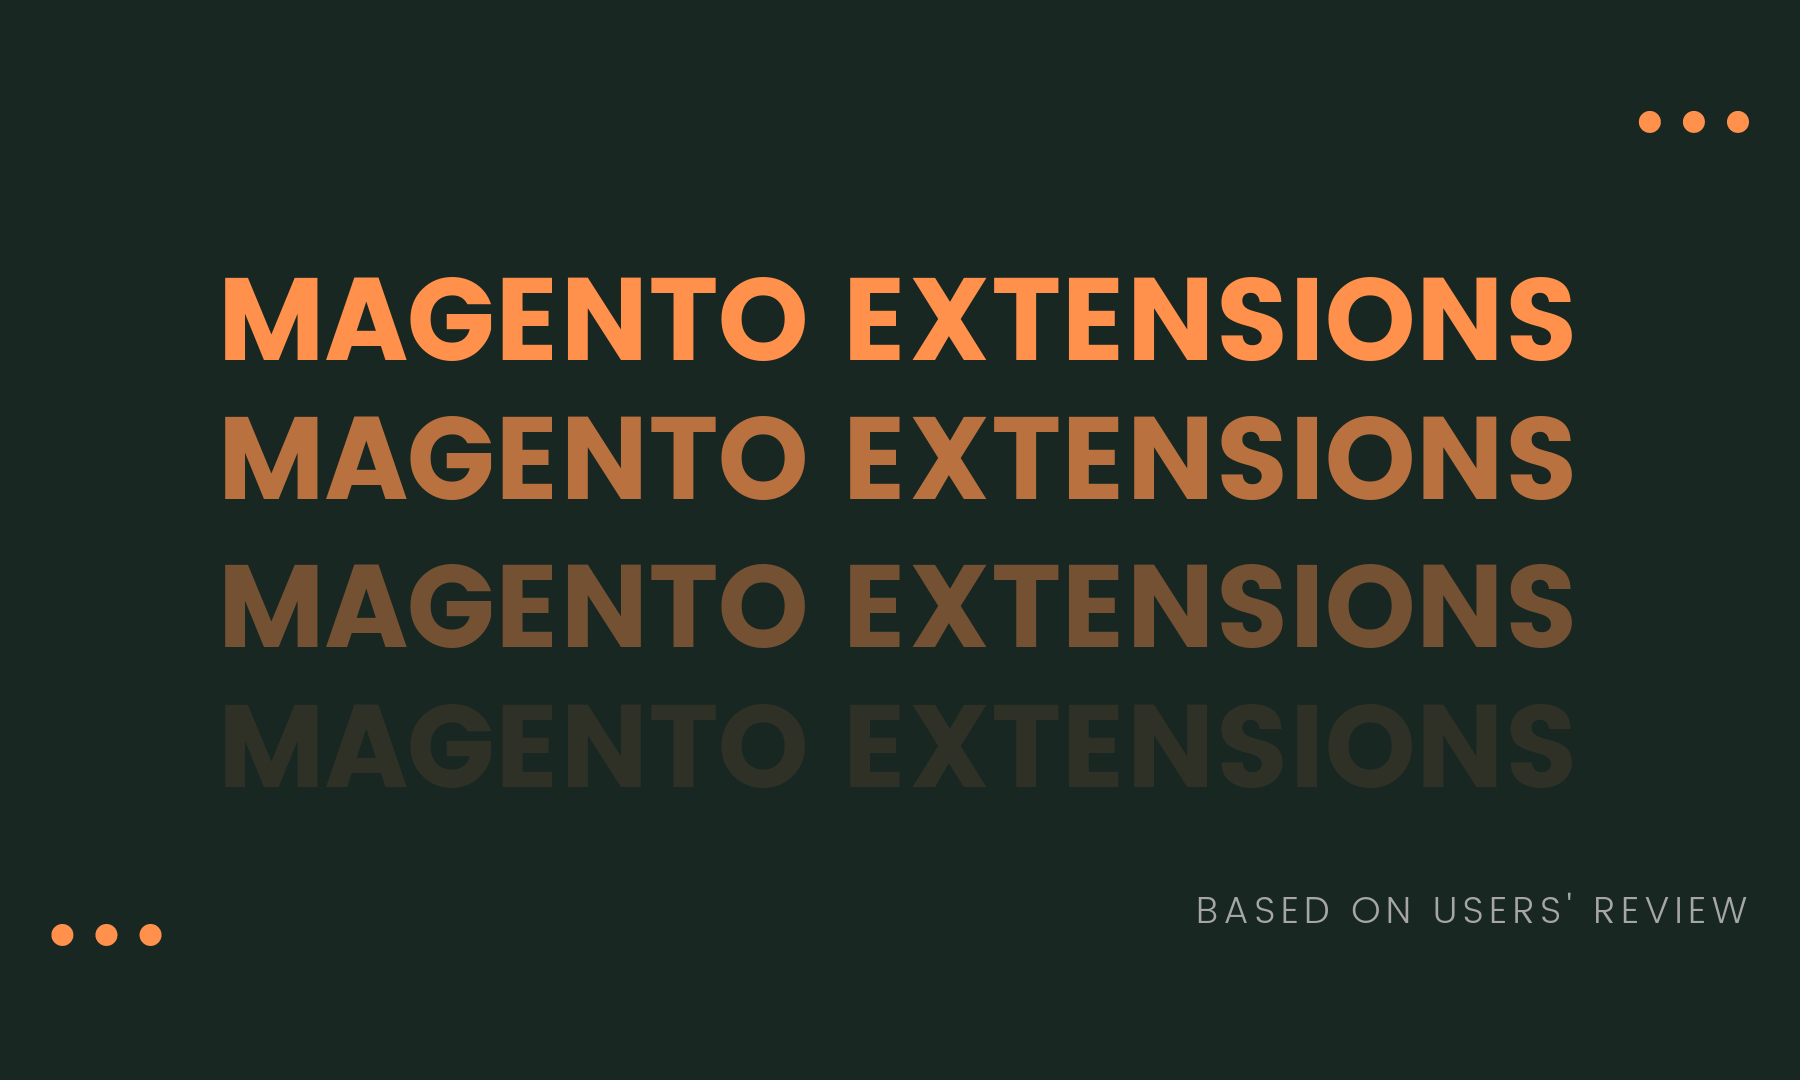 15 Best Magento Extensions - Sort by Features (Based on Users' Review)